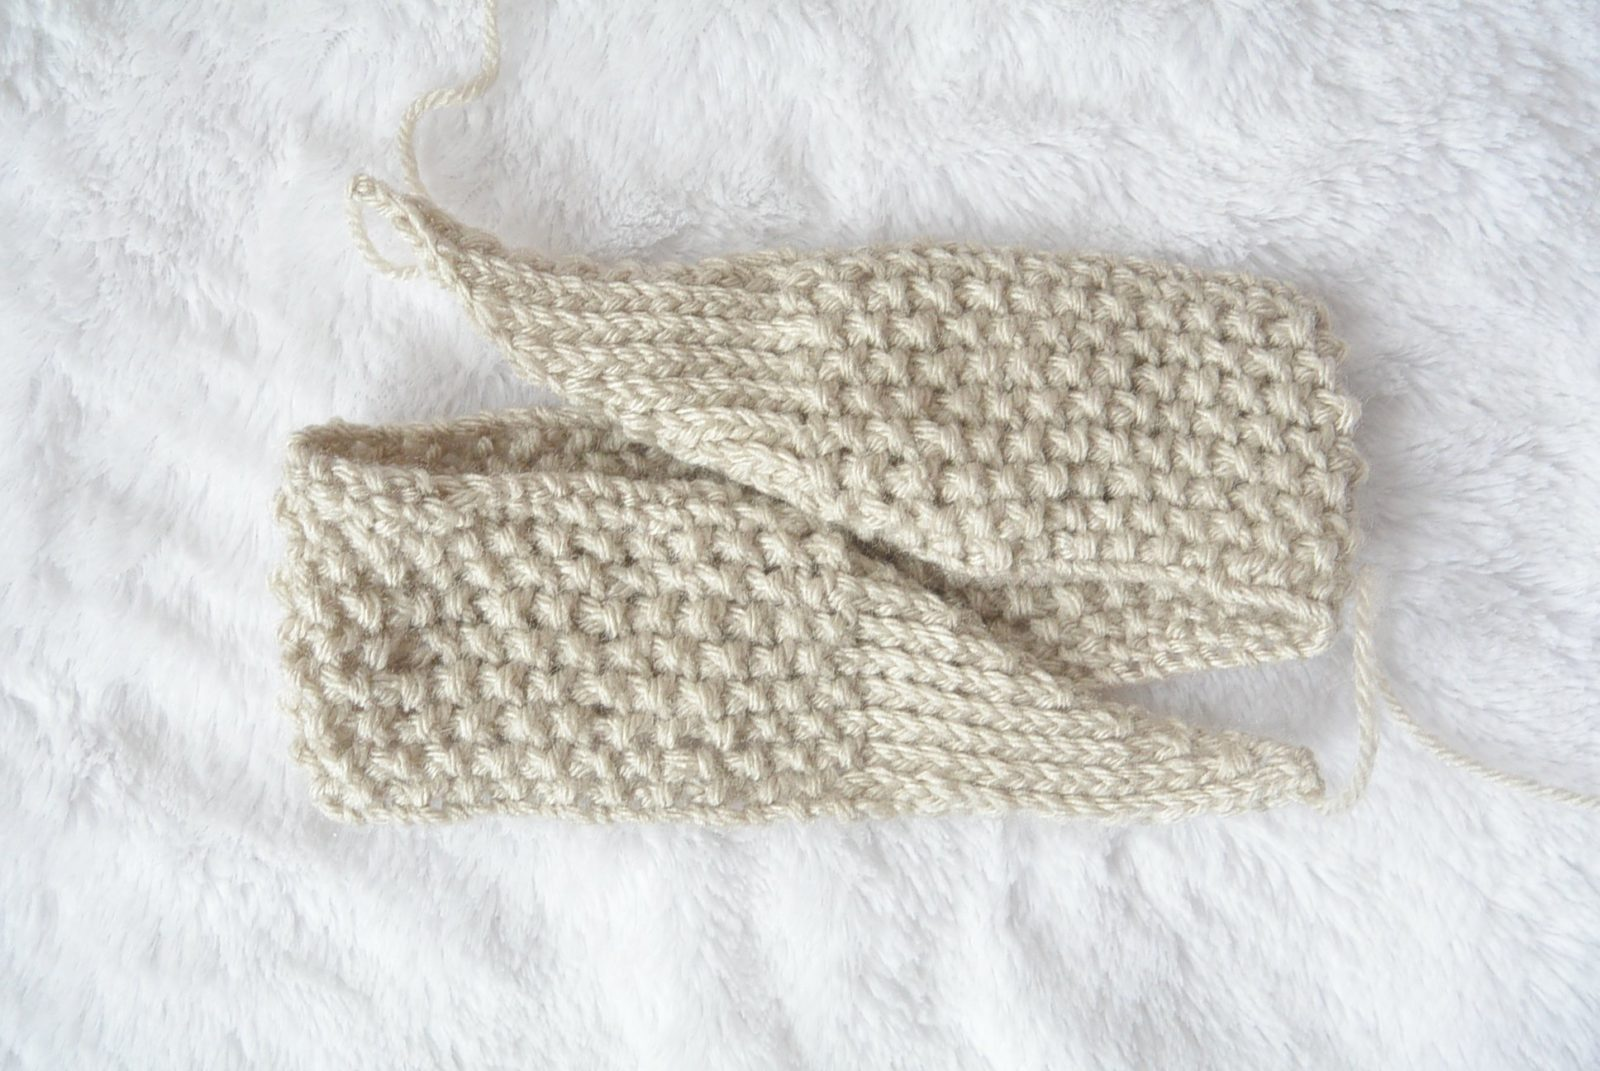 Free Knitting Pattern For Baby Blanket Easy : Vintage Knit Tie Headband Pattern   Mama In A Stitch